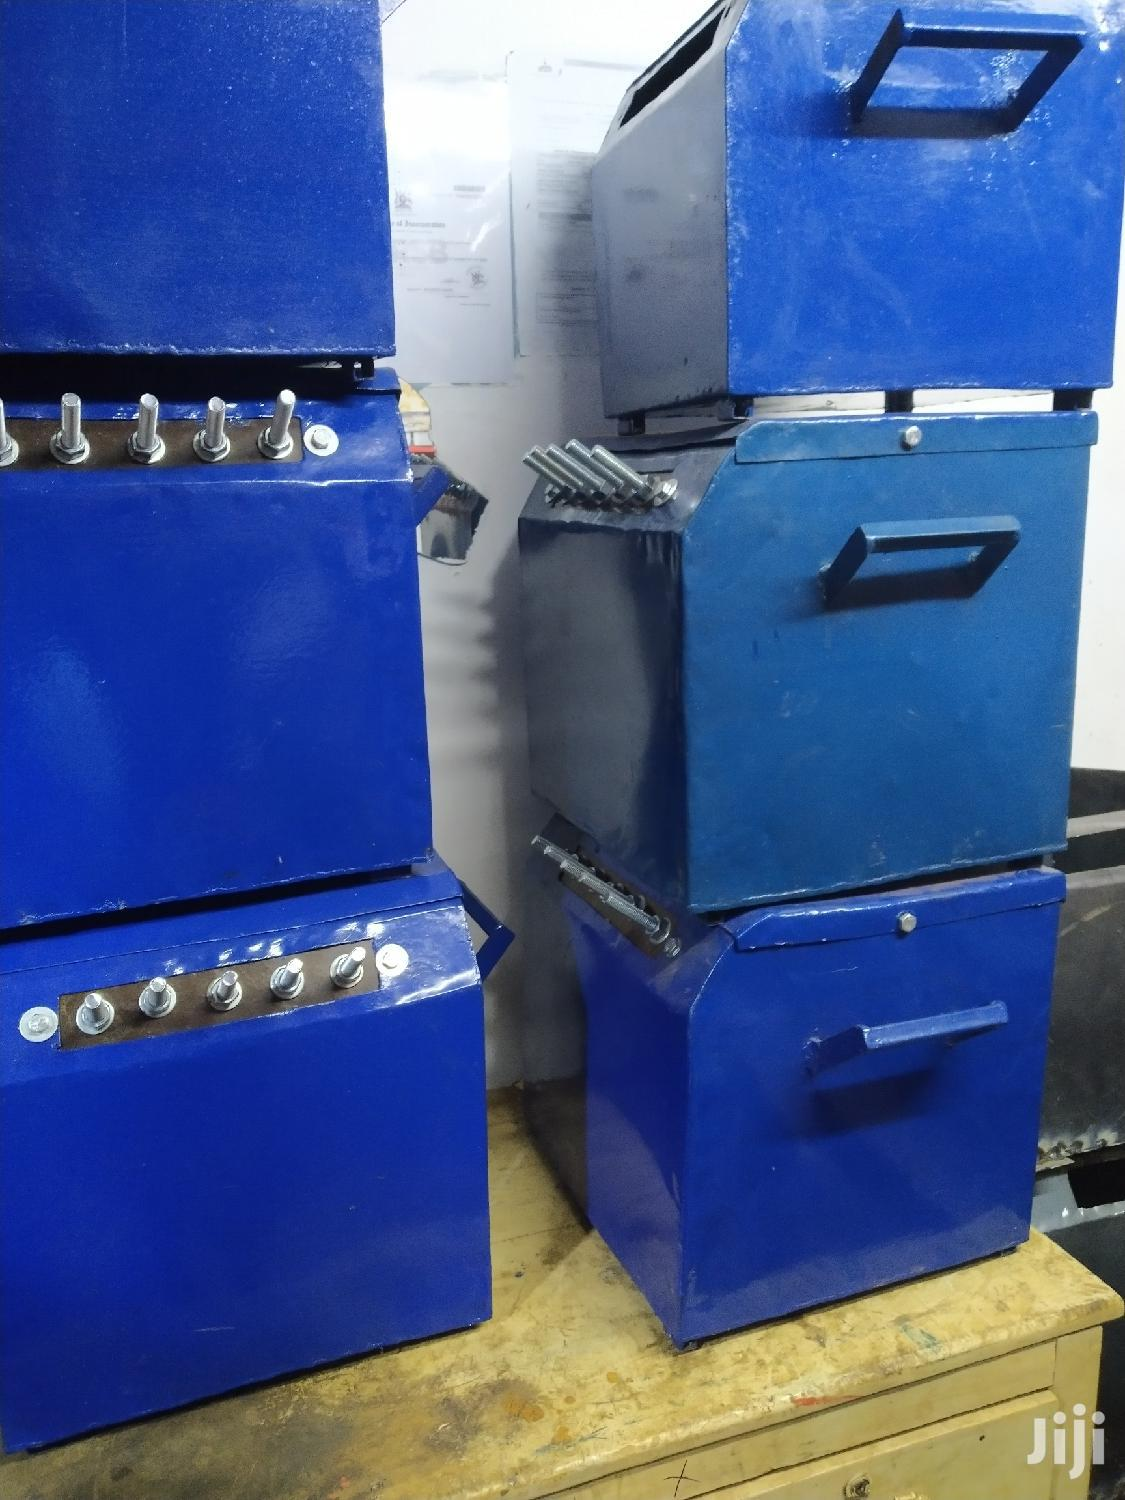 Oil Welding Machines | Electrical Equipment for sale in Kampala, Central Region, Uganda